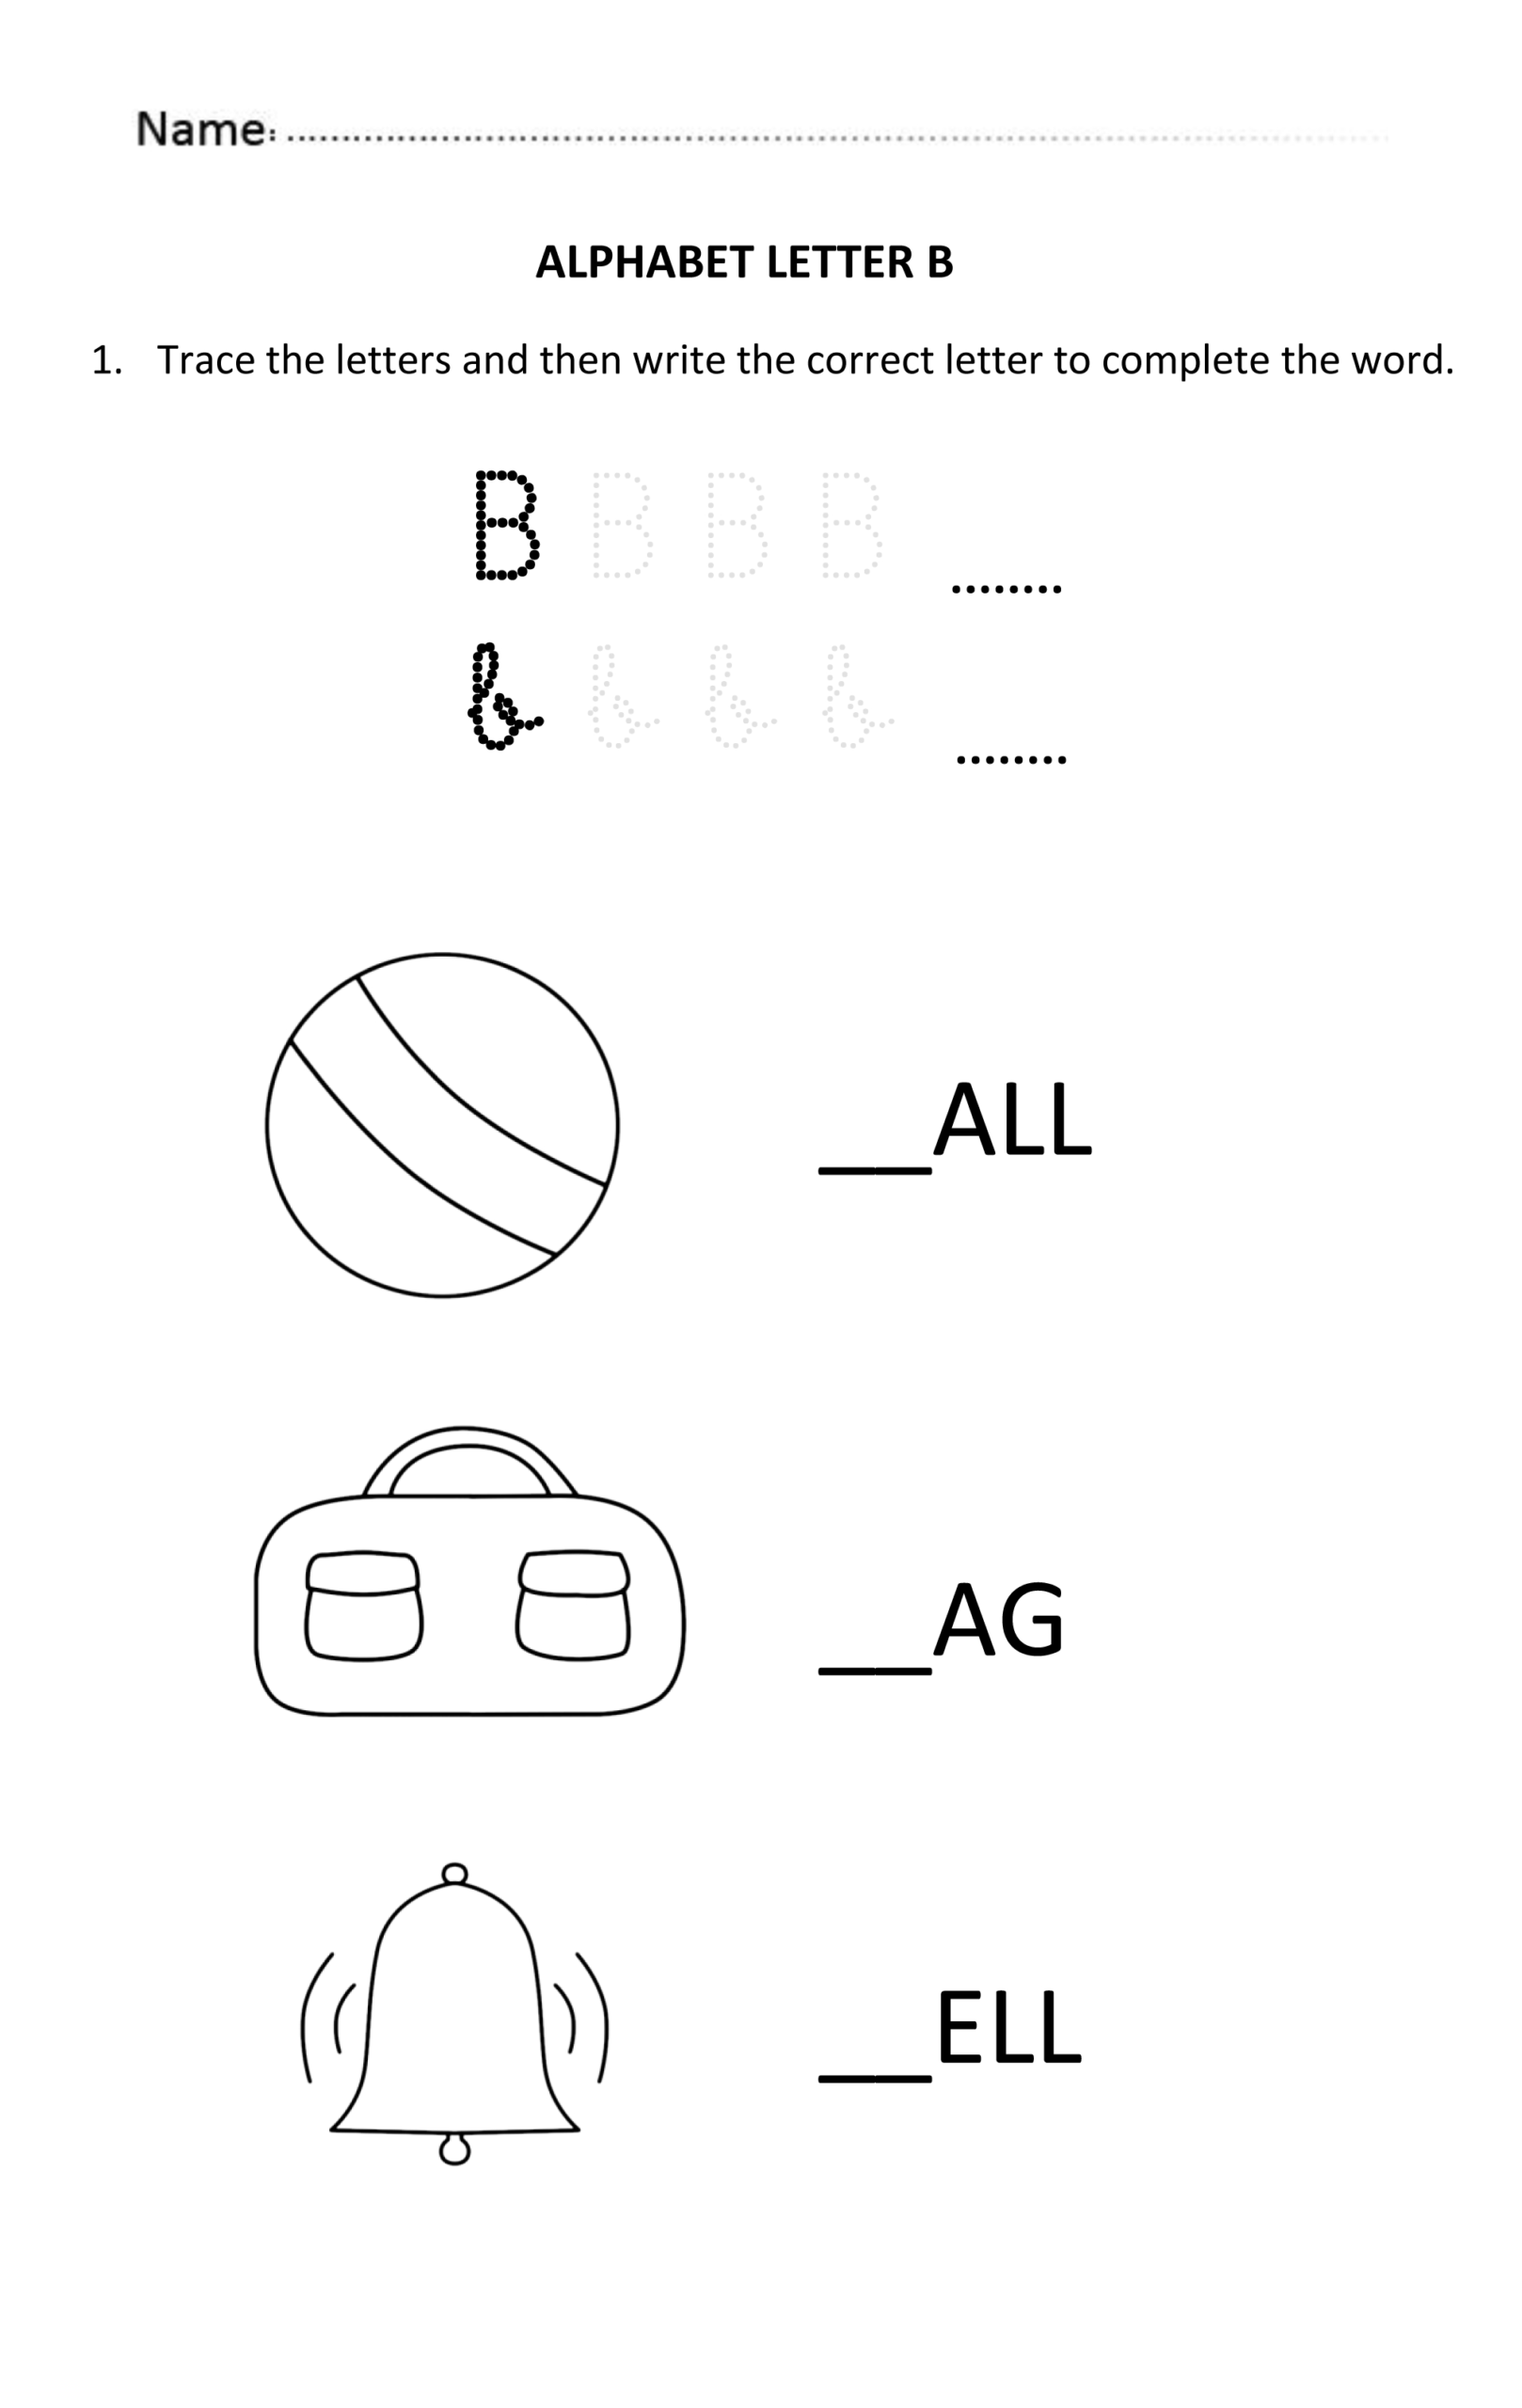 Learning And Writing Letter B For 5 And 6 Year Old Students pertaining to Letter B Worksheets For 3 Year Olds